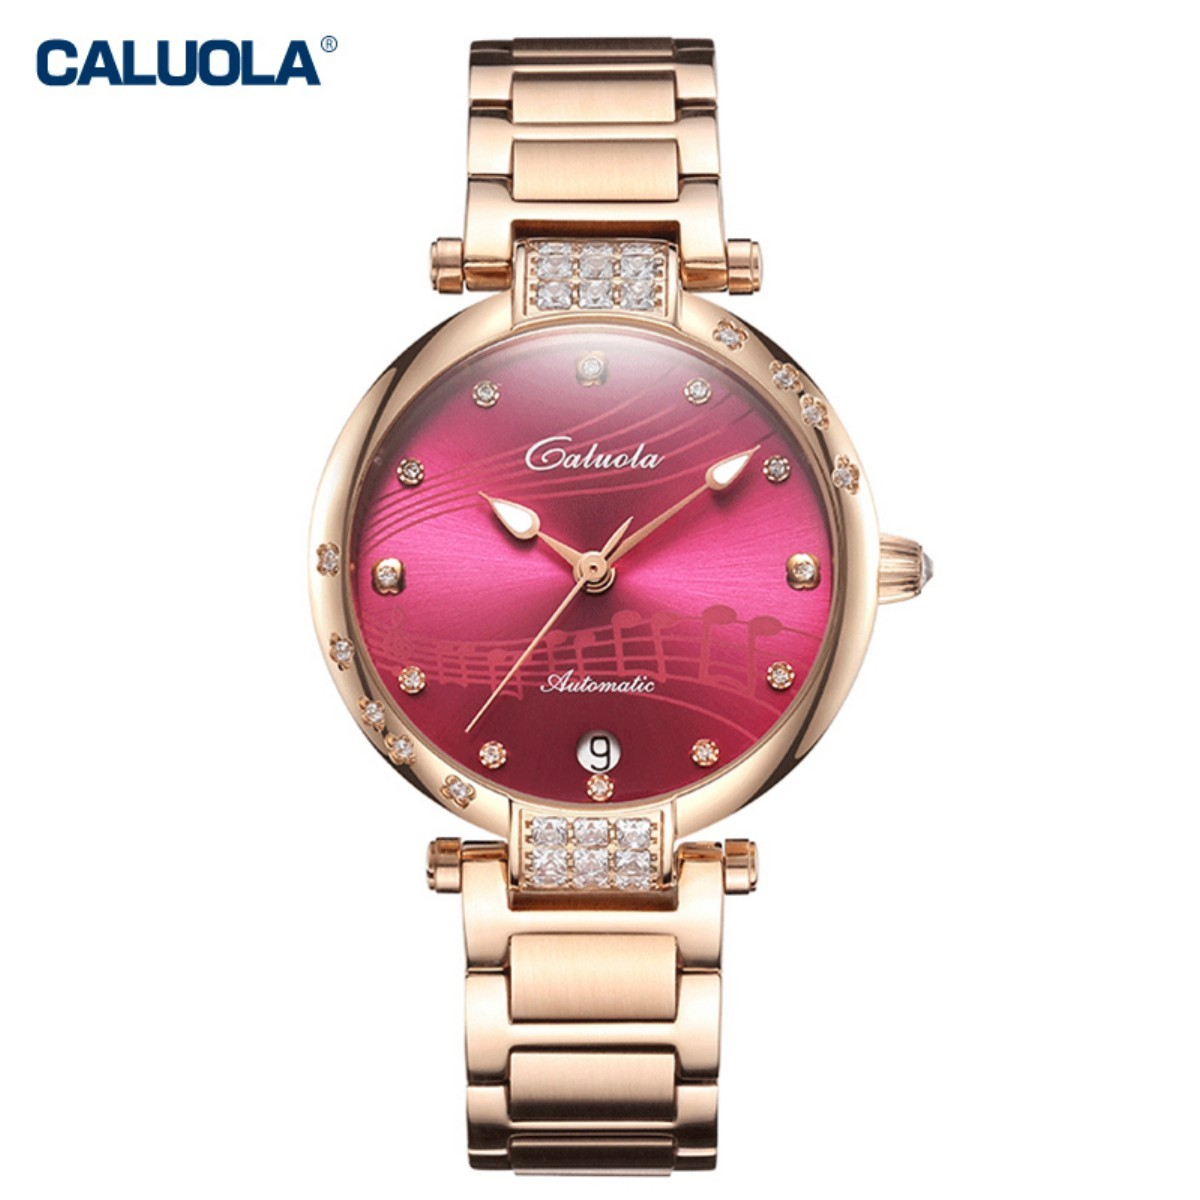 Caluola Women Watch 34mm Rose Gold 1171